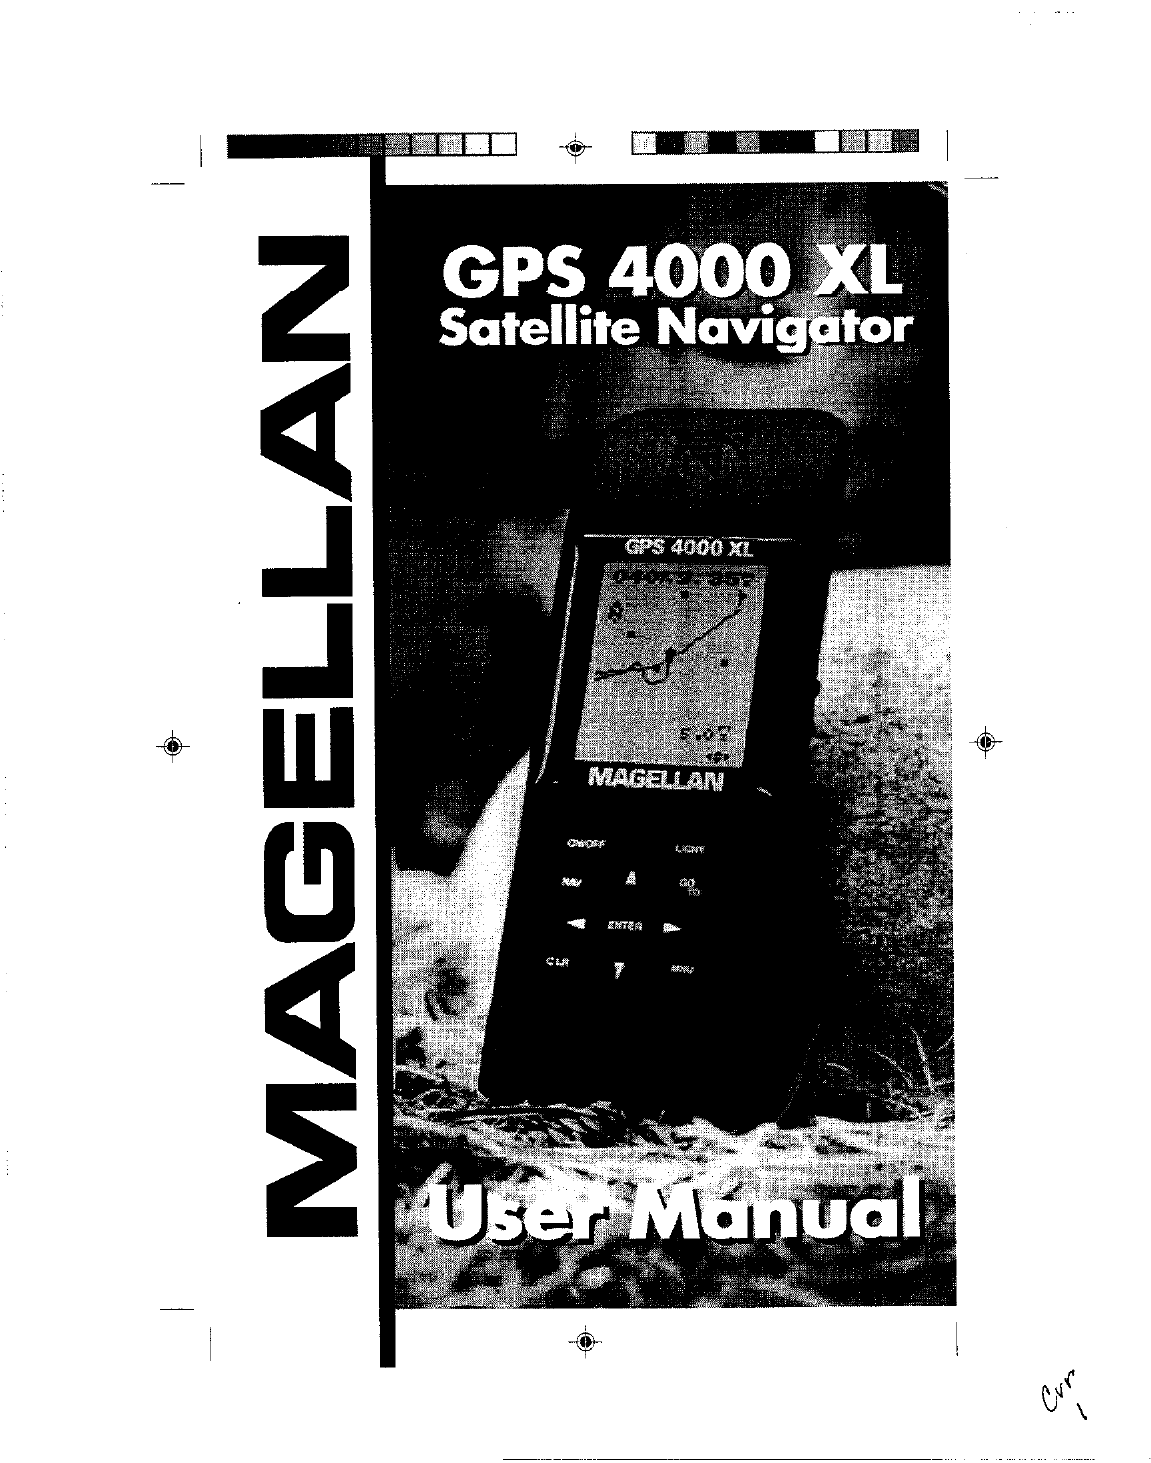 magellan gps receiver gps 4000 xl user guide manualsonline com rh auto manualsonline com Magellan GPS User Guide Magellan RoadMate 3045 Manual